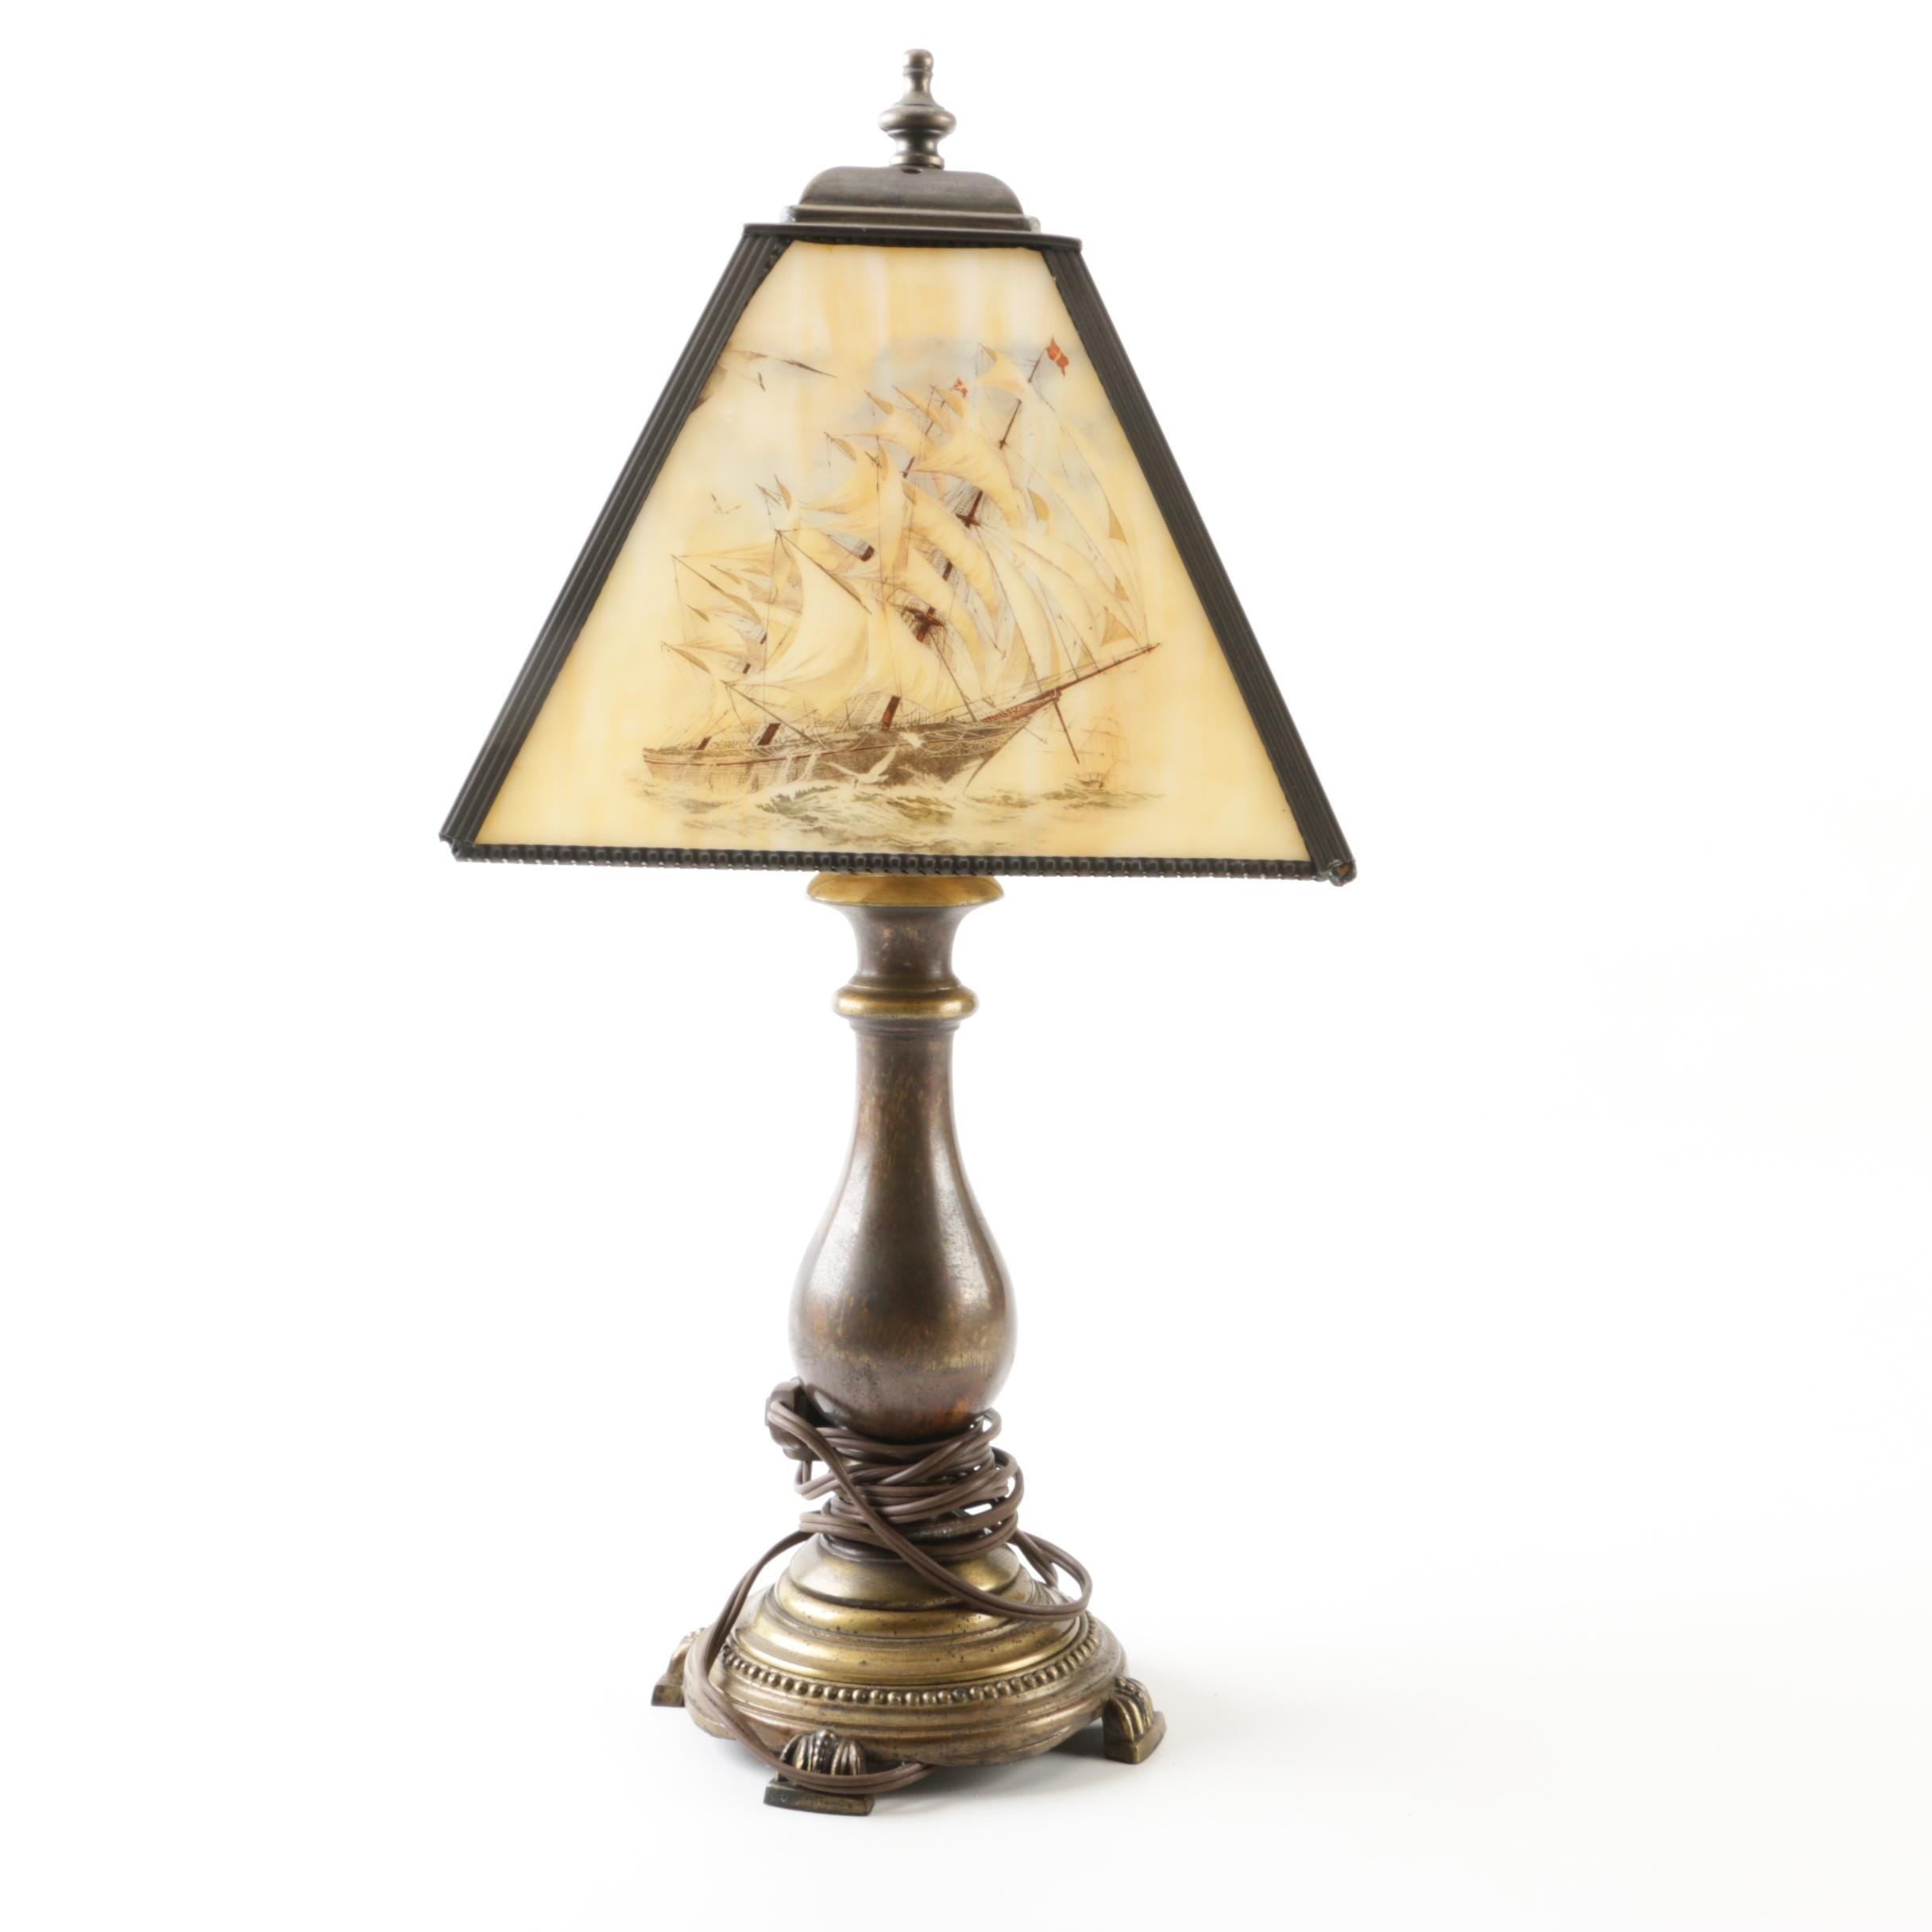 Vintage Nautical Table Lamp with Slag Glass Shade